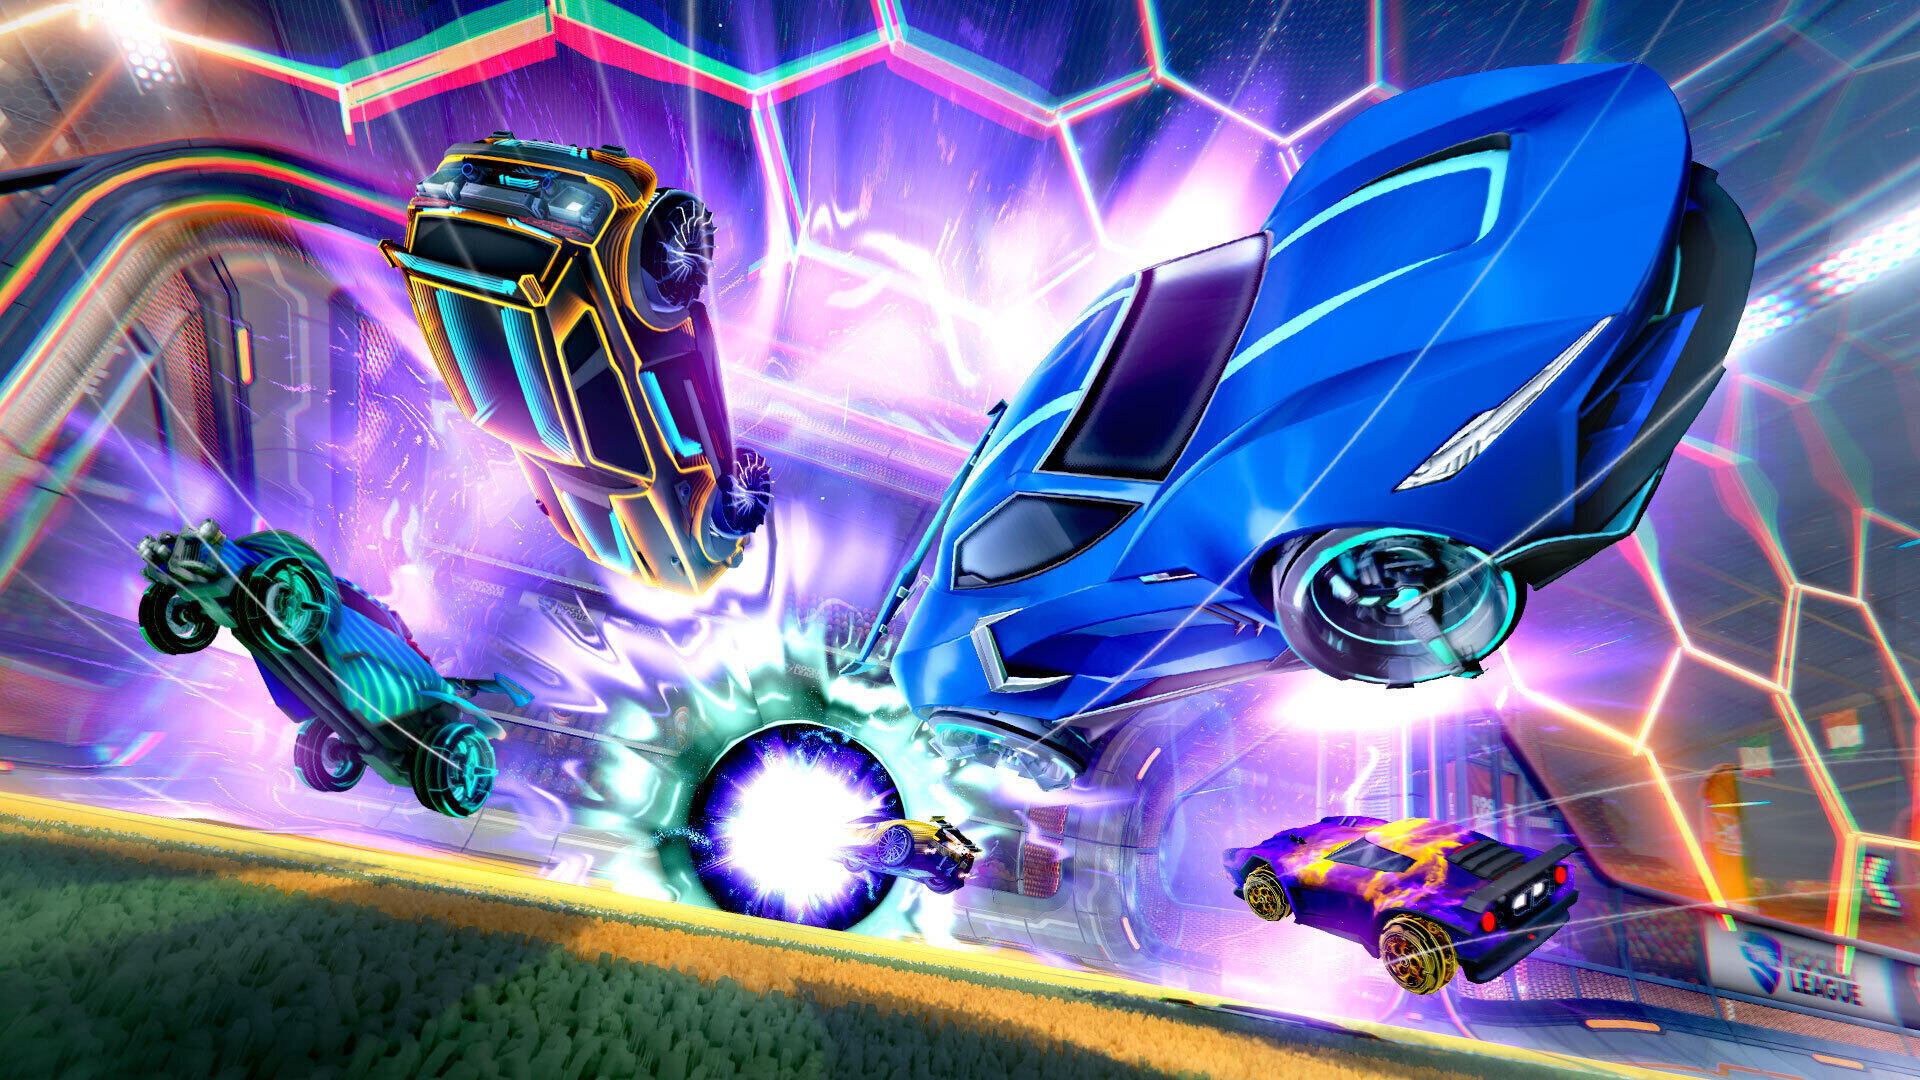 New-competitive-rank-and-streamlined-schedule-coming-to-Rocket-League-2.jpg